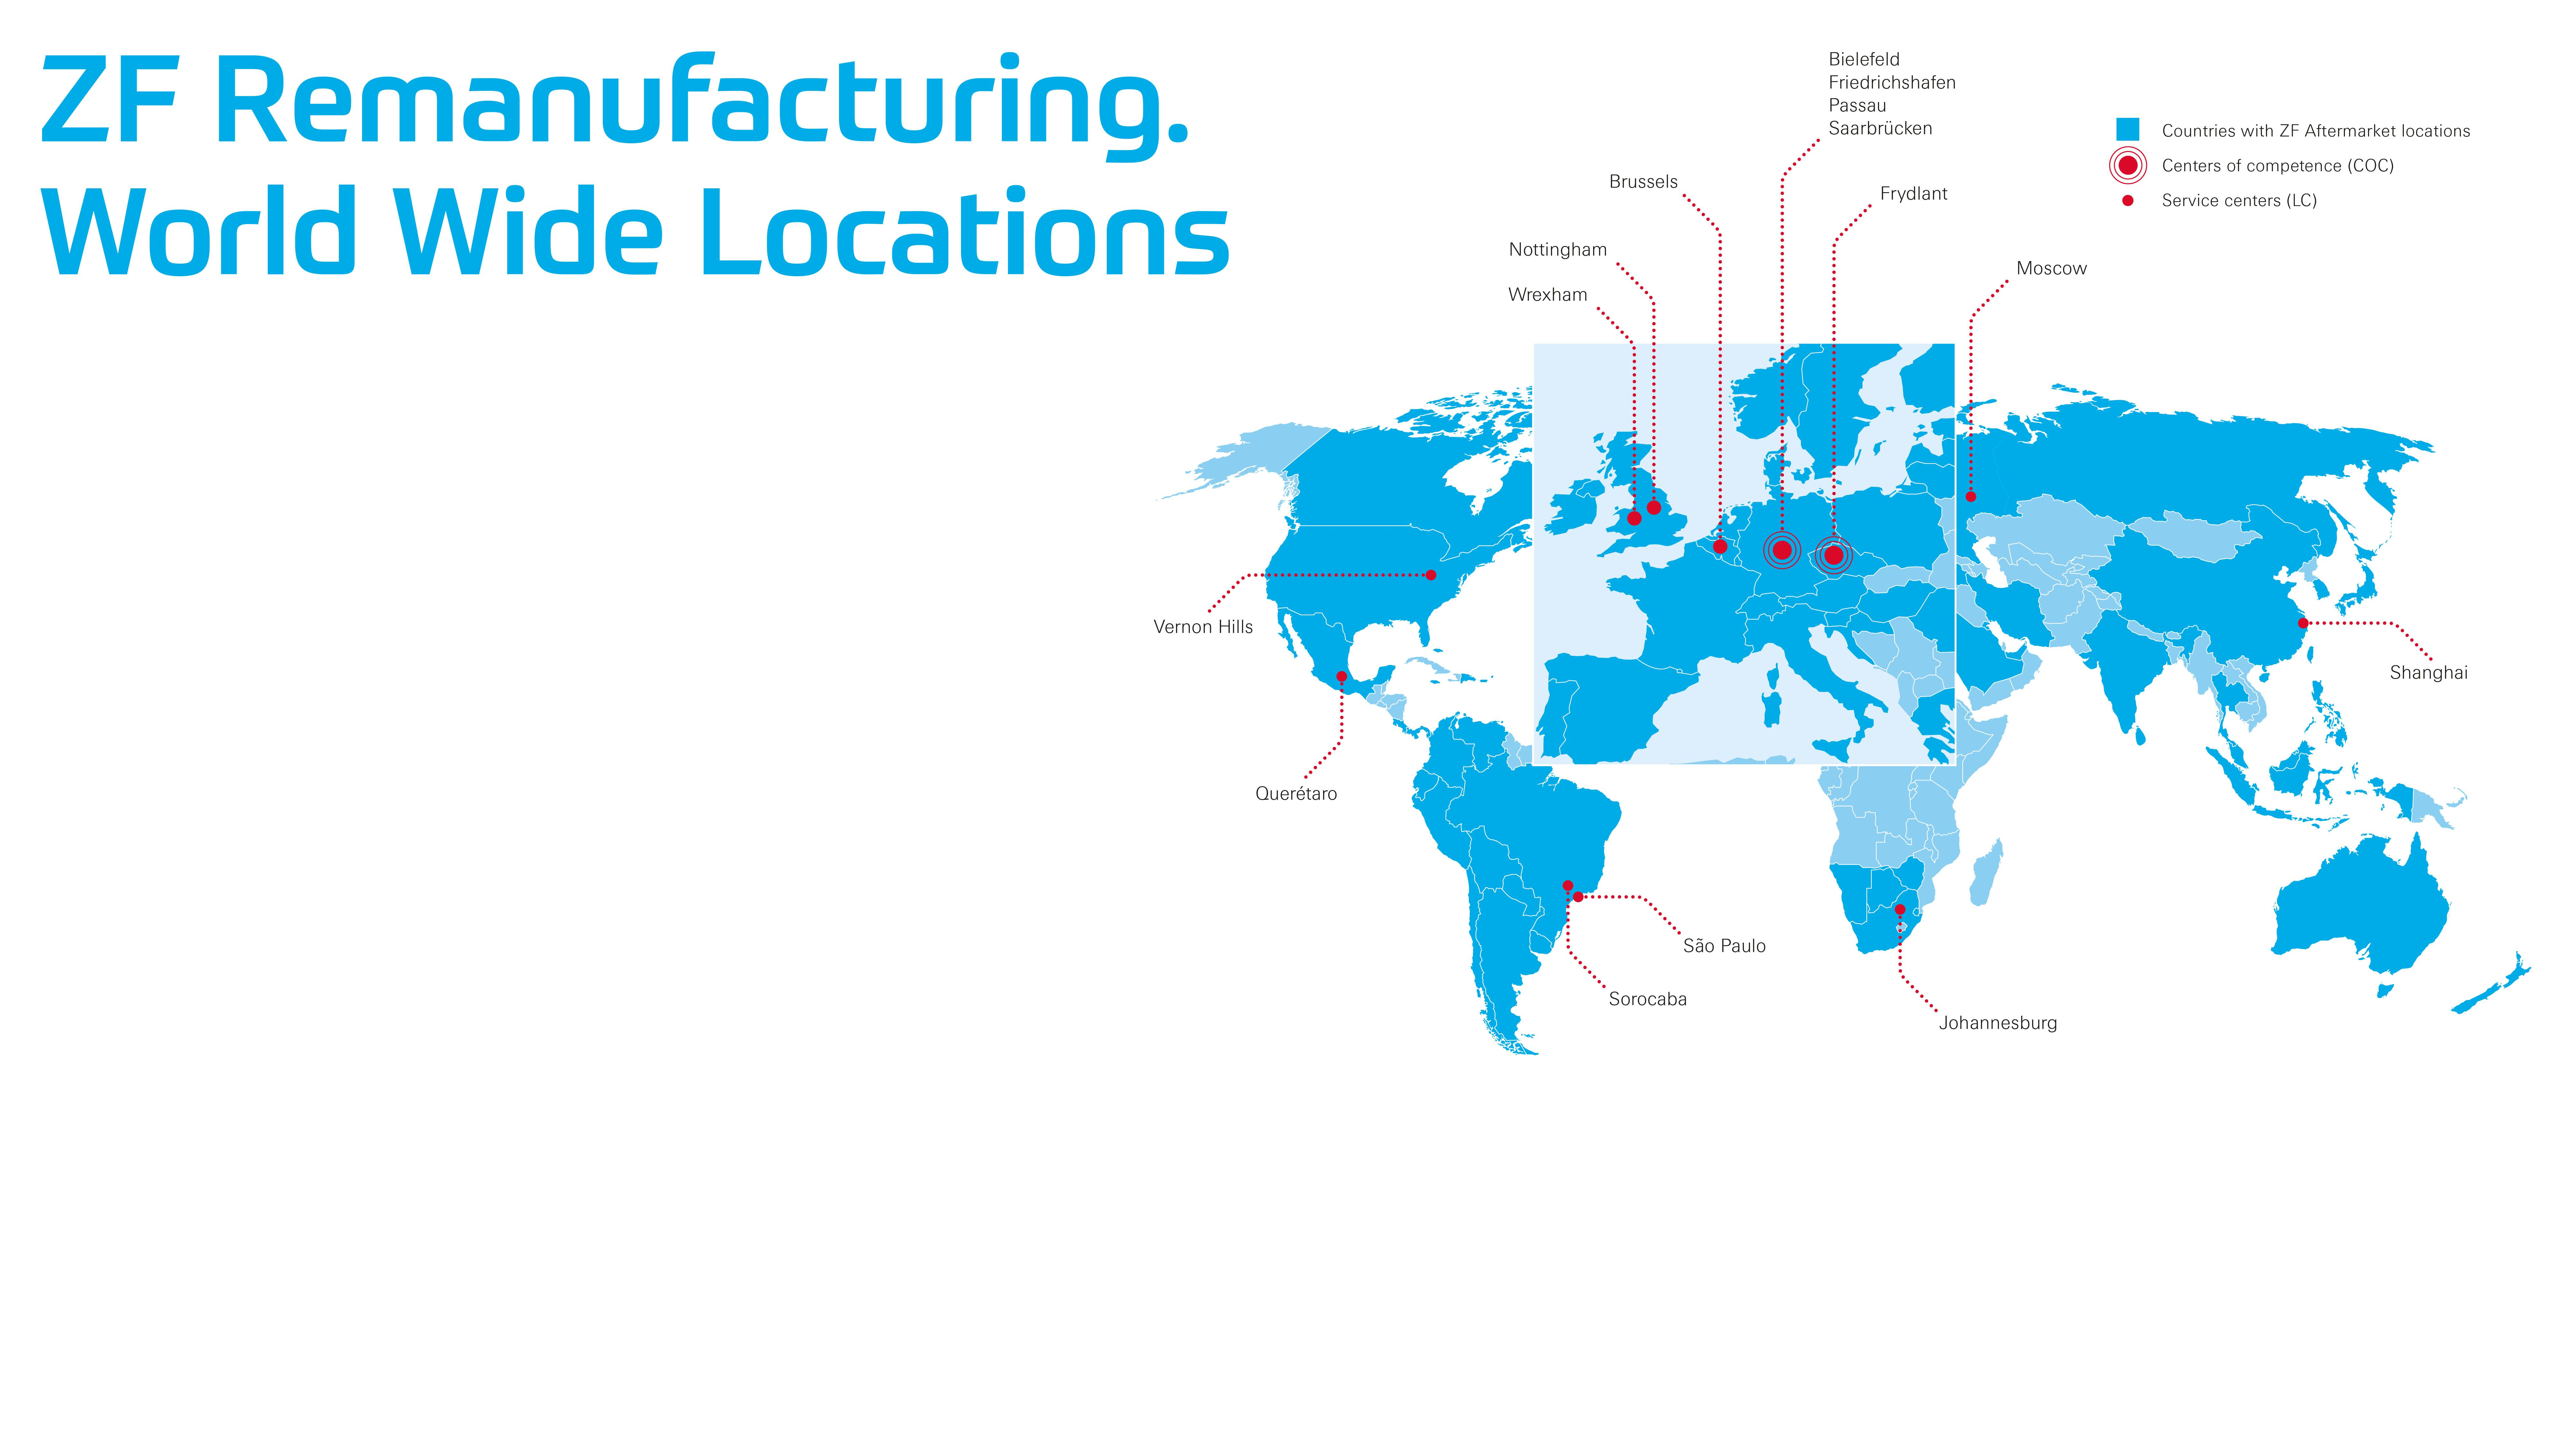 Worldwide ZF remanufacturing locations